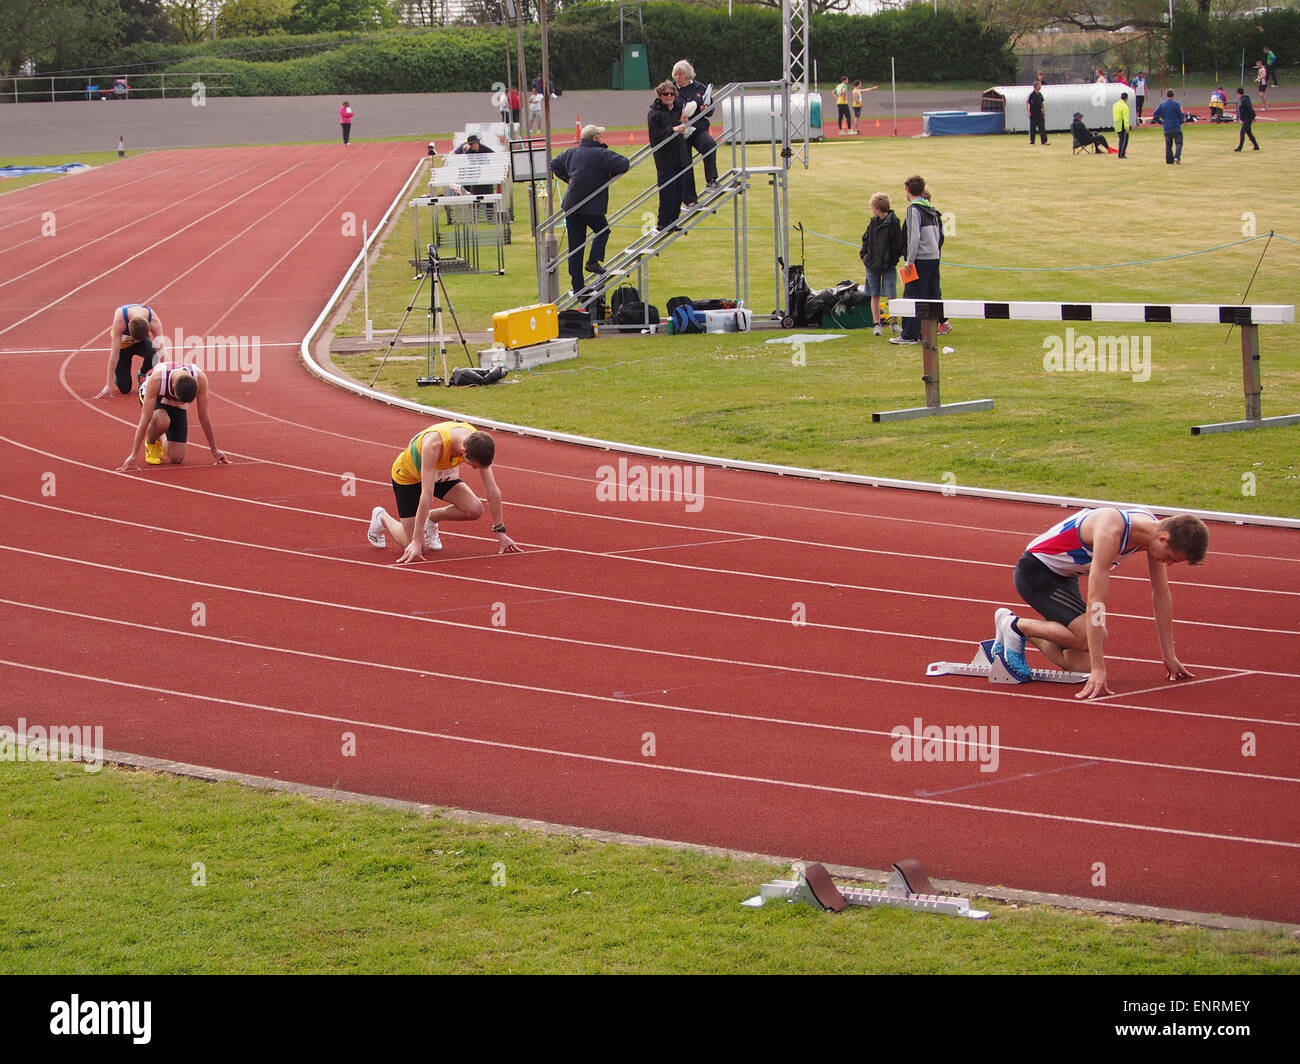 Sprinters prepare for the start of a race on a running track - Stock Image